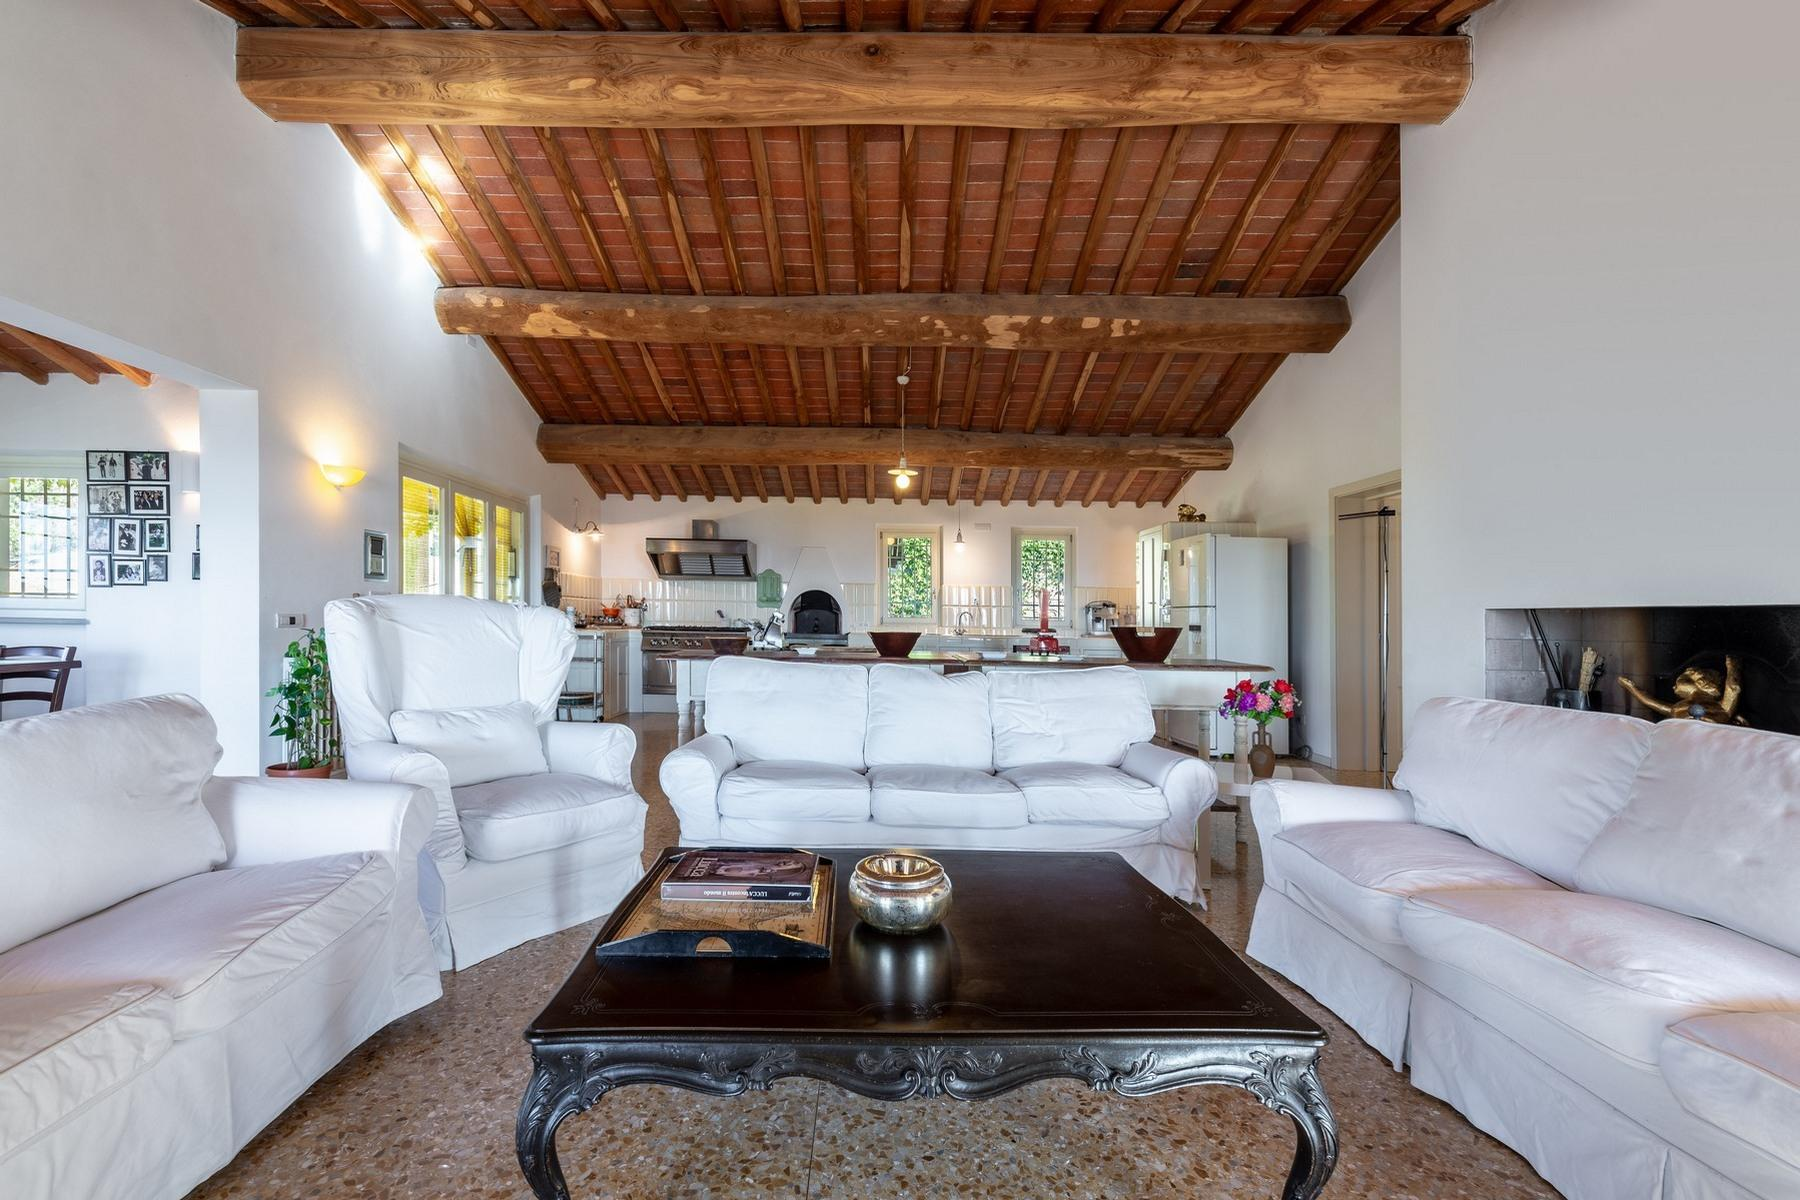 Superb villa with pool on the hills of Lucca - 5